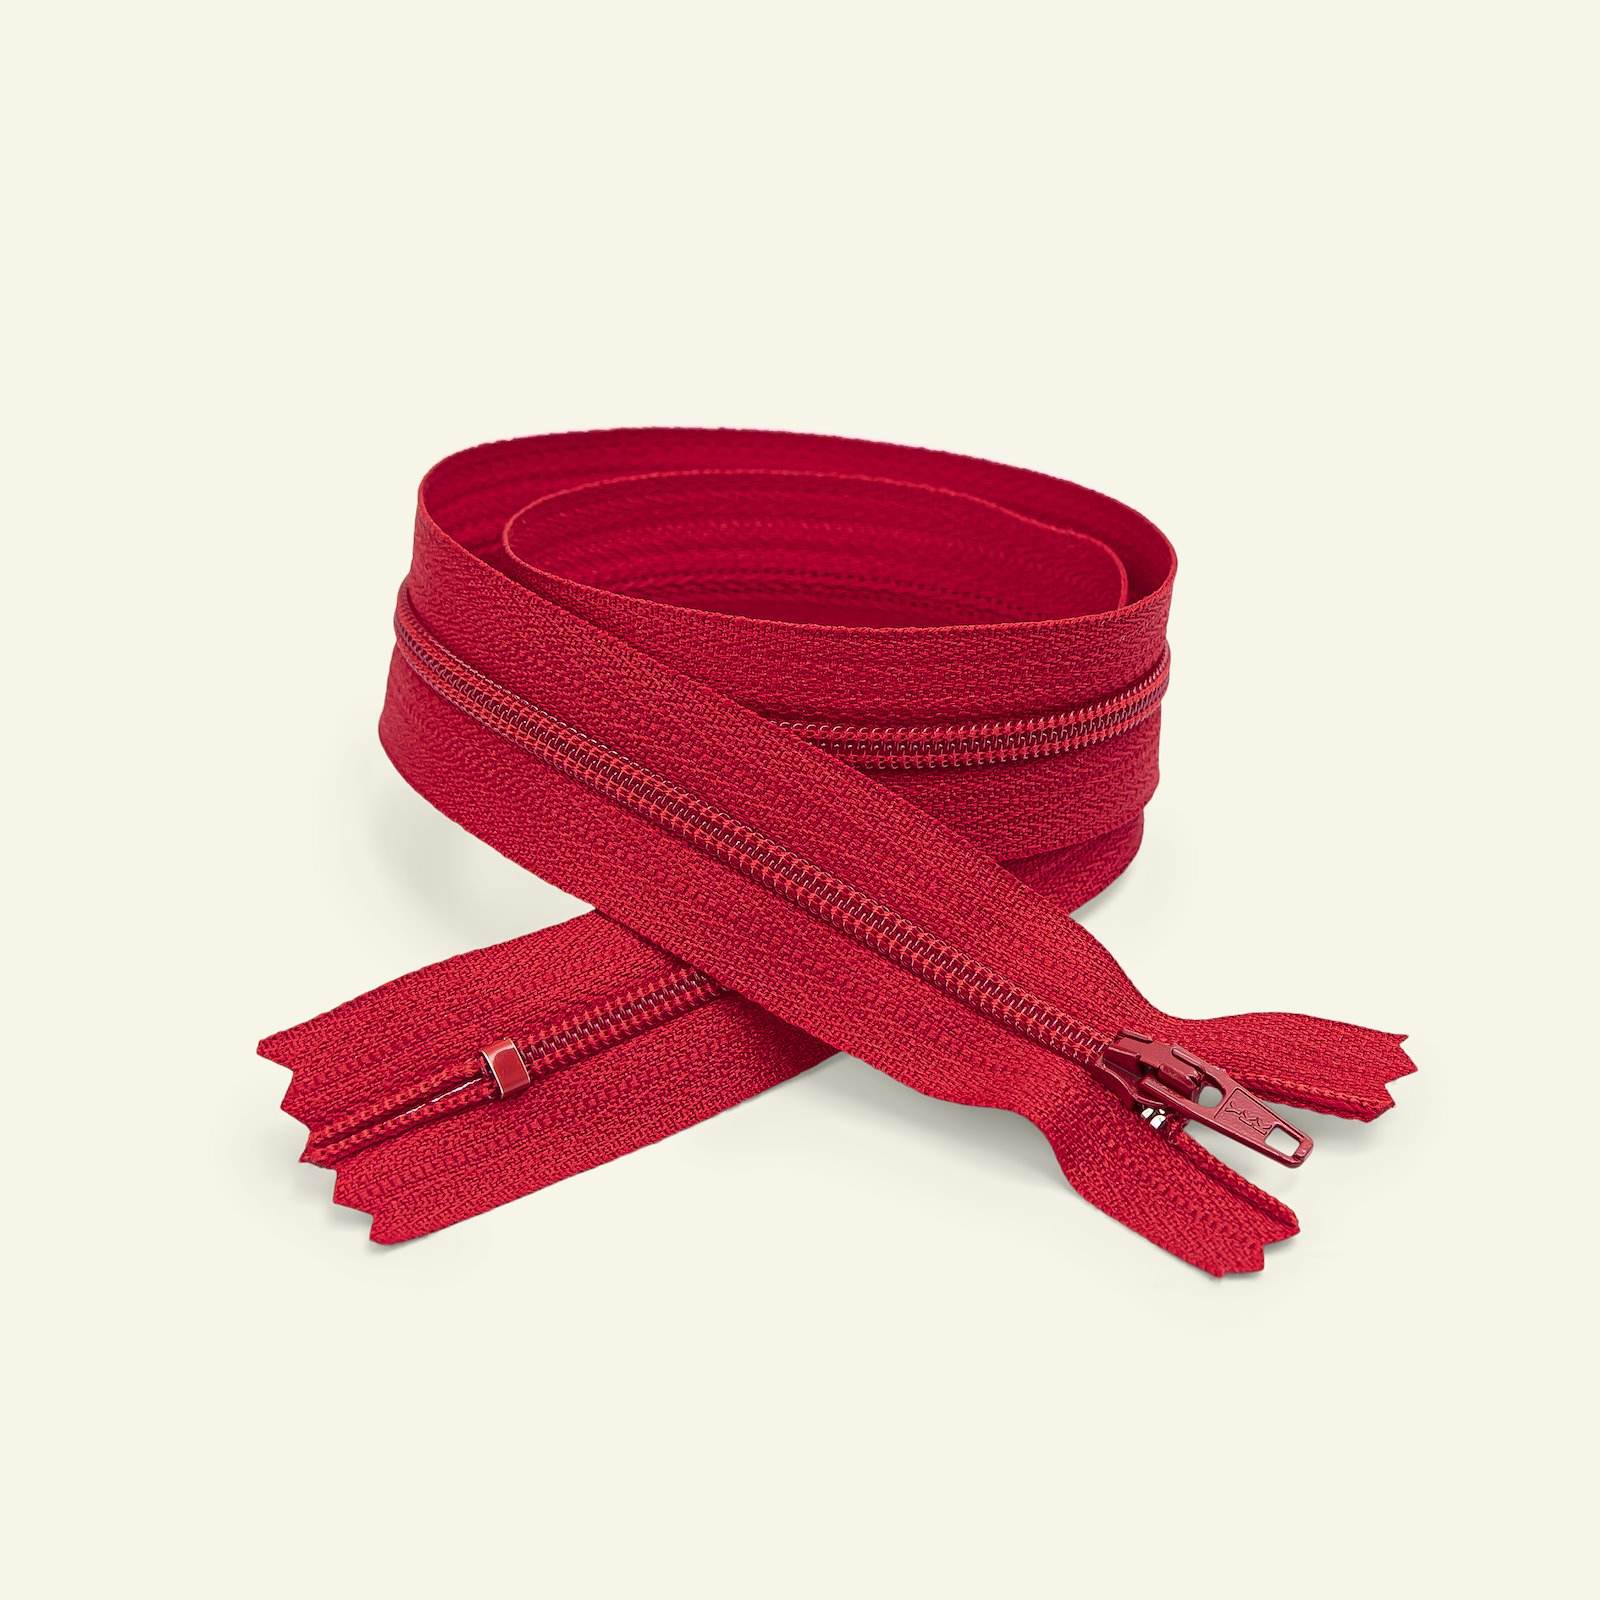 YKK zip 4mm closed end 15cm red x40511_pack